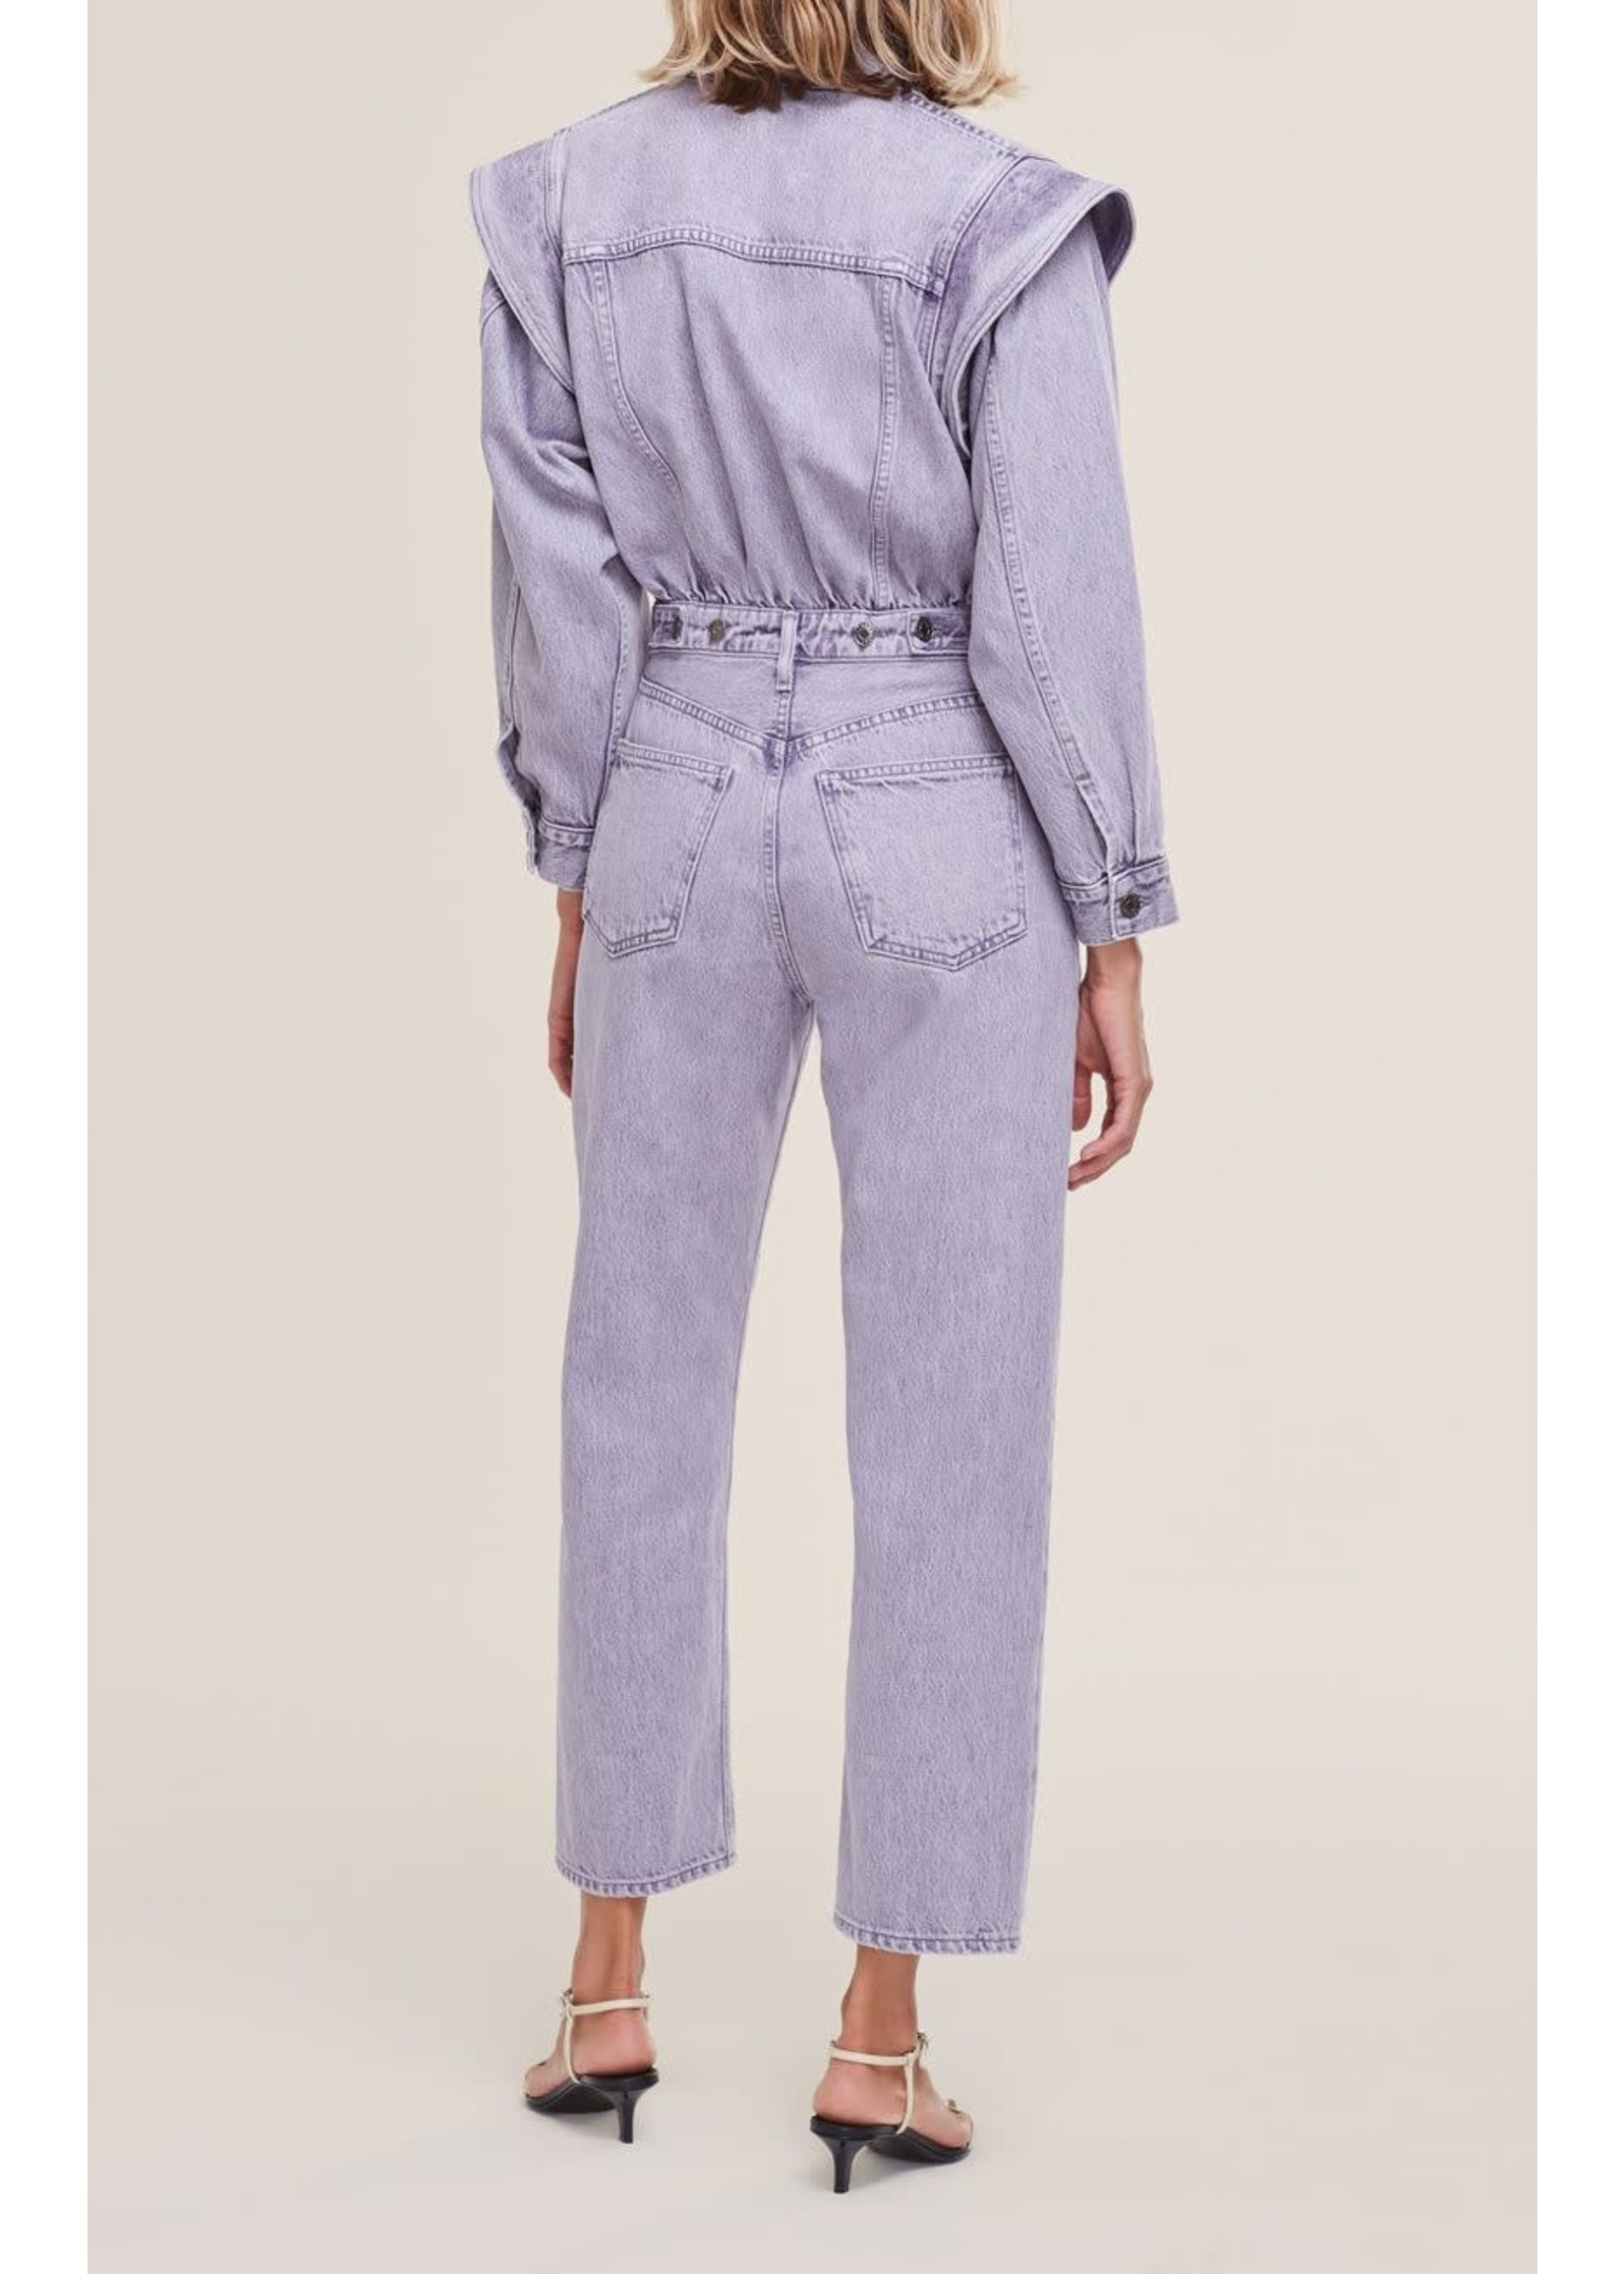 AGOLDE Reyna Jumpsuit in Ashberry